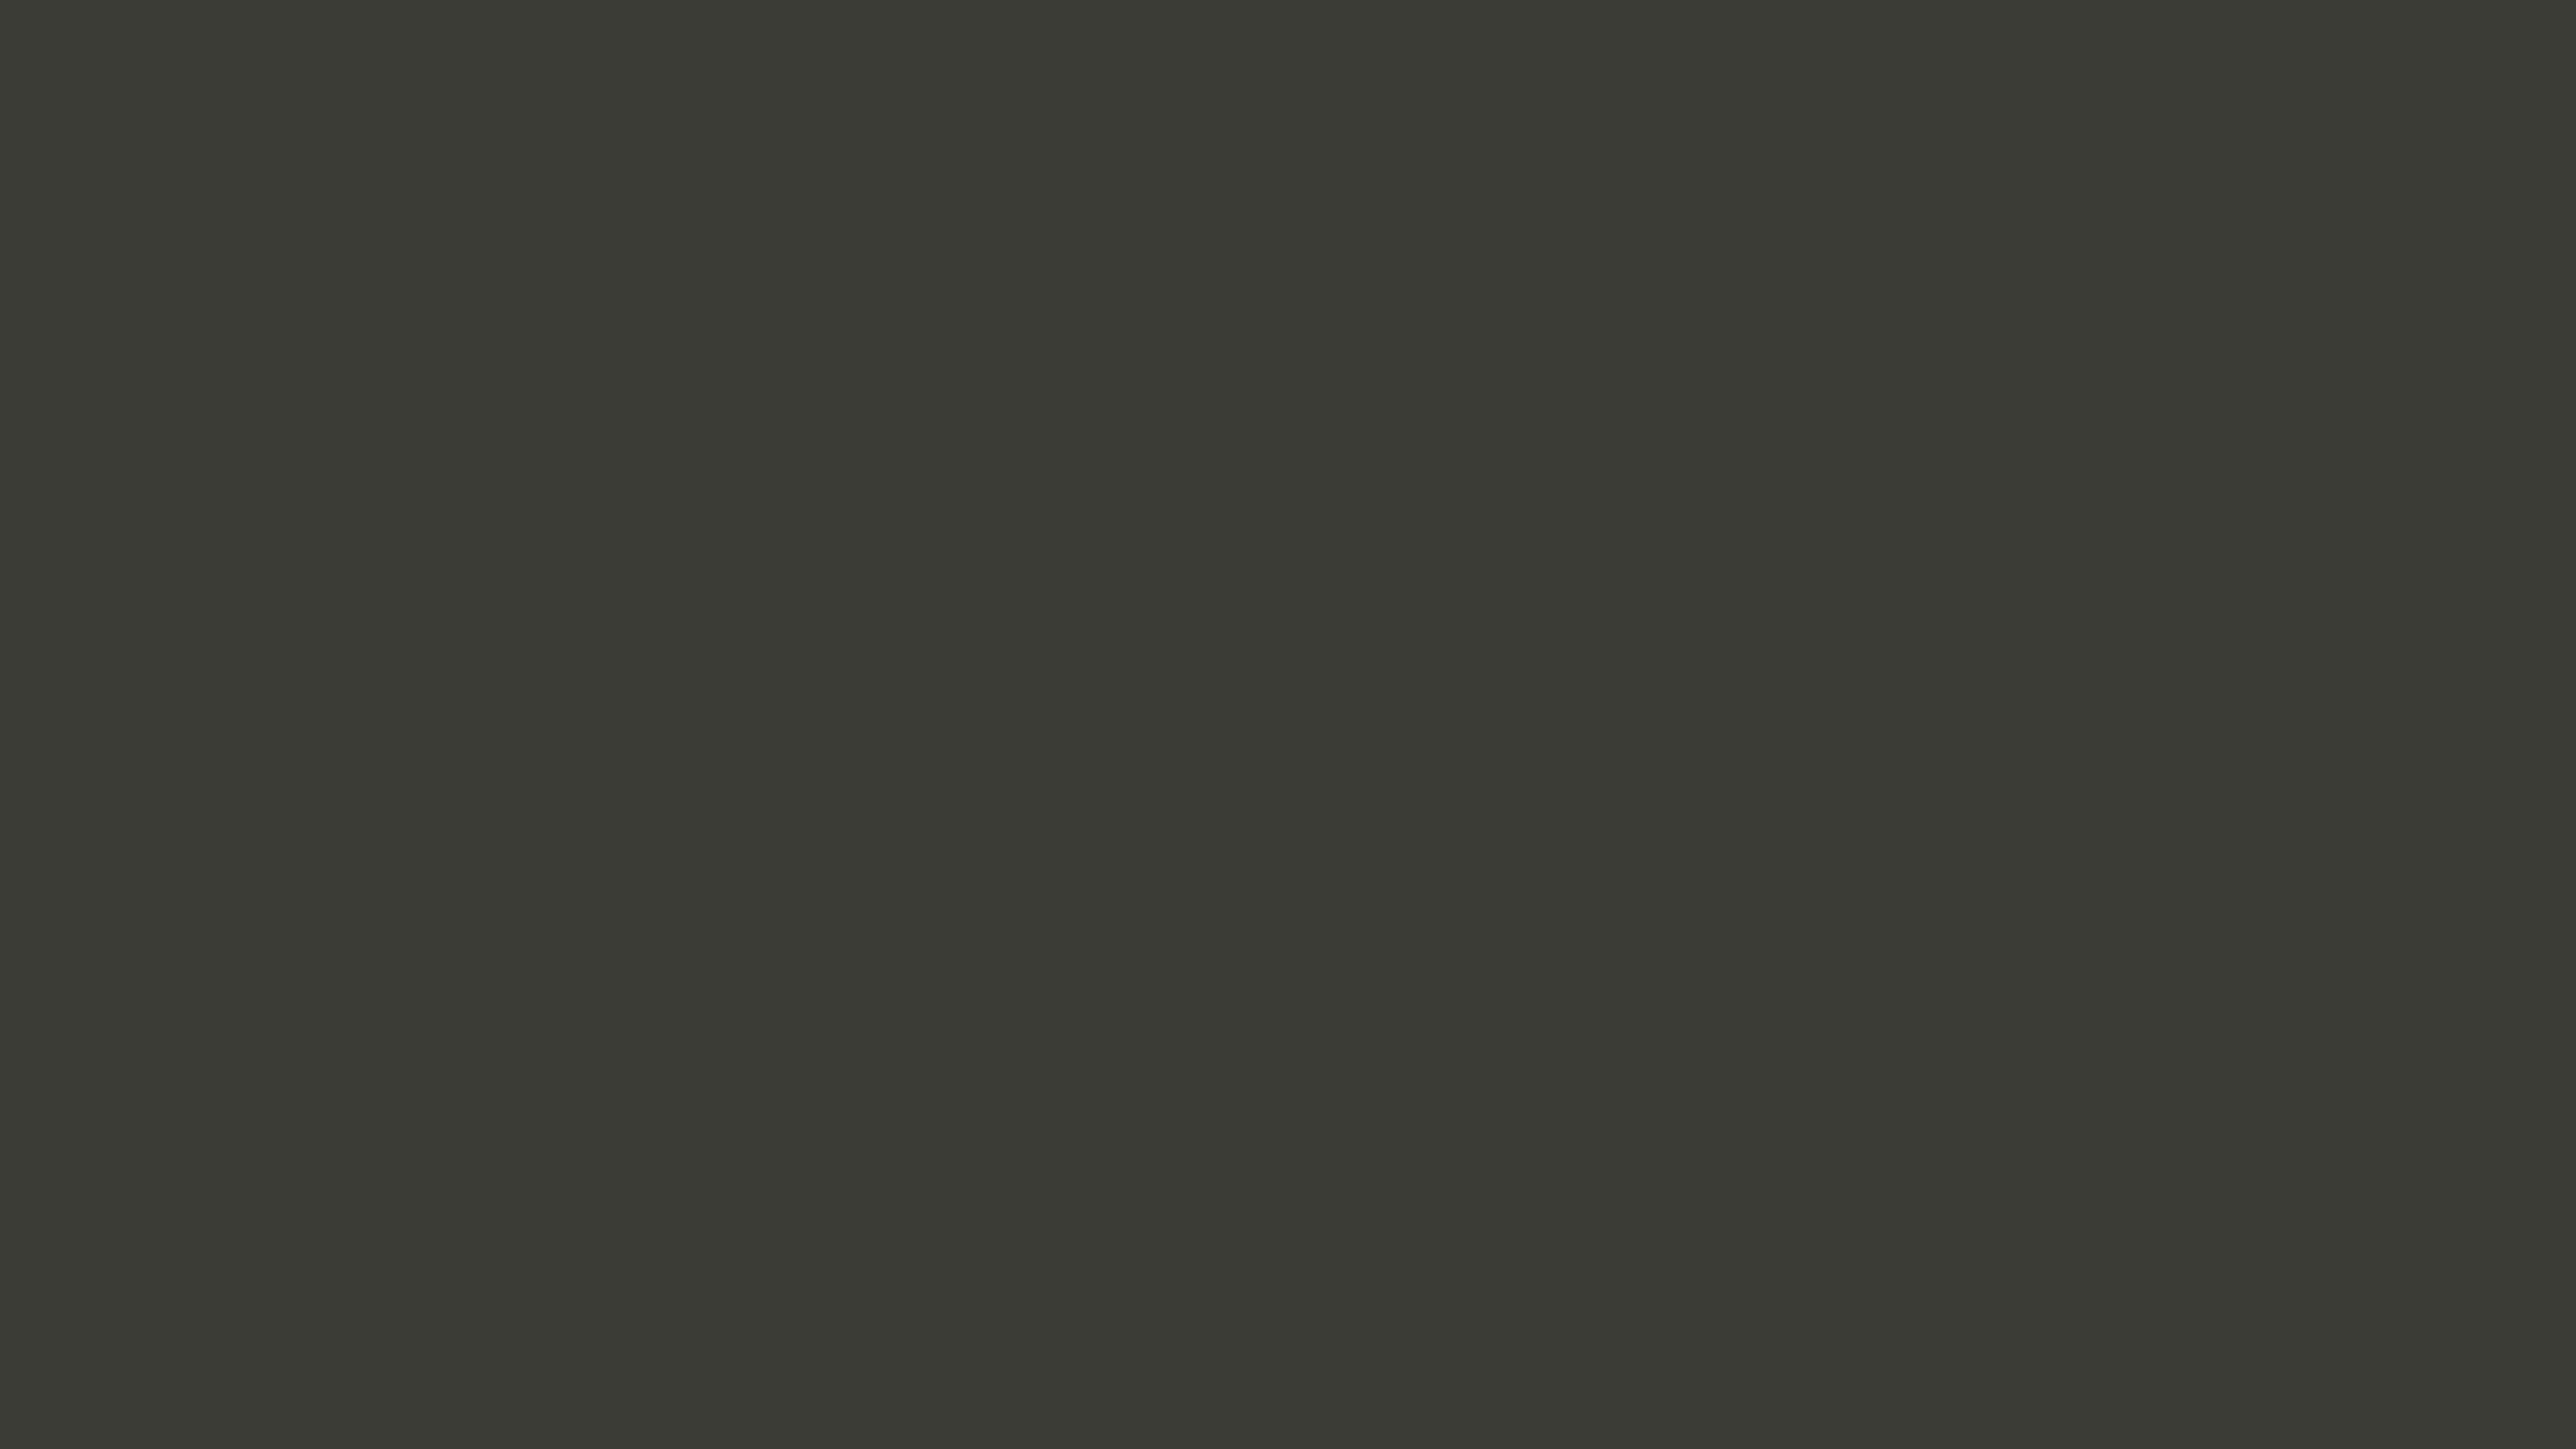 7680x4320 Black Olive Solid Color Background